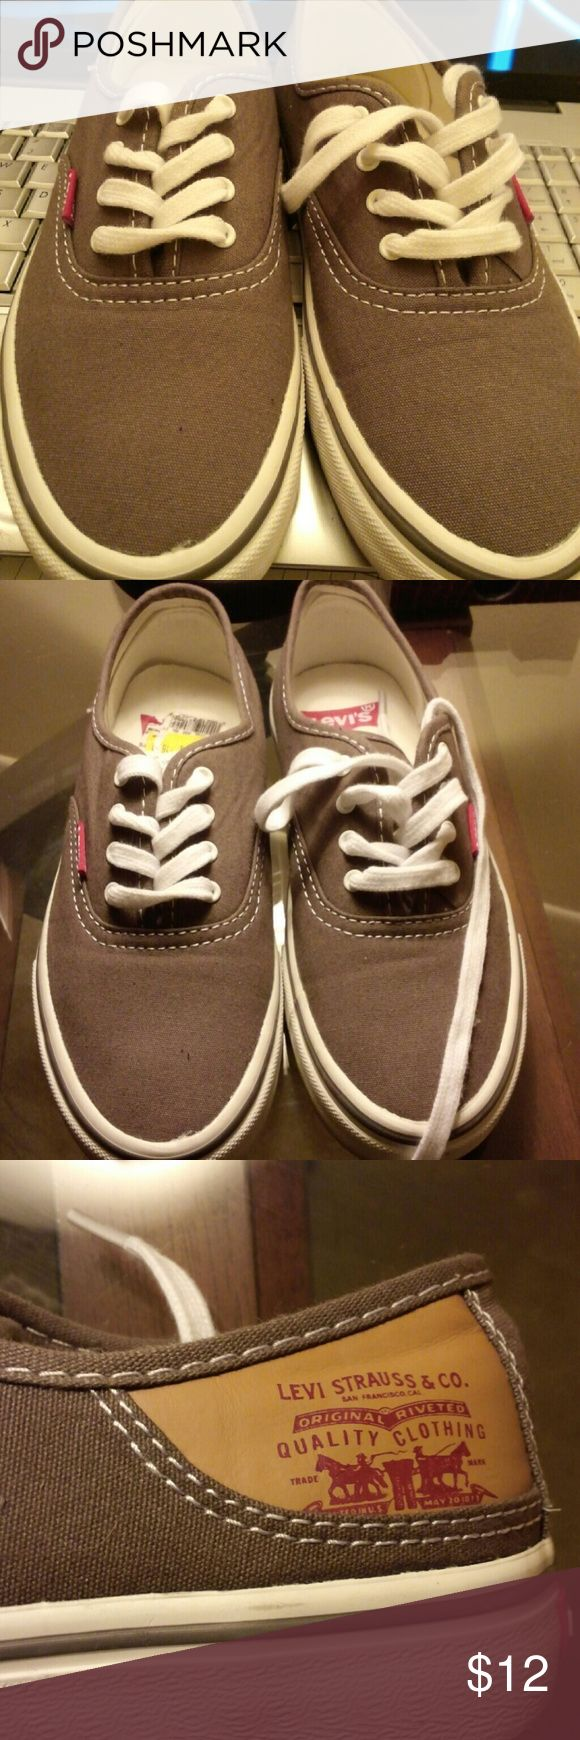 Levis Canvas Sneakers Great condition only worn a few times. Just need a wipe down on the bottom edge Levi's Shoes Sneakers